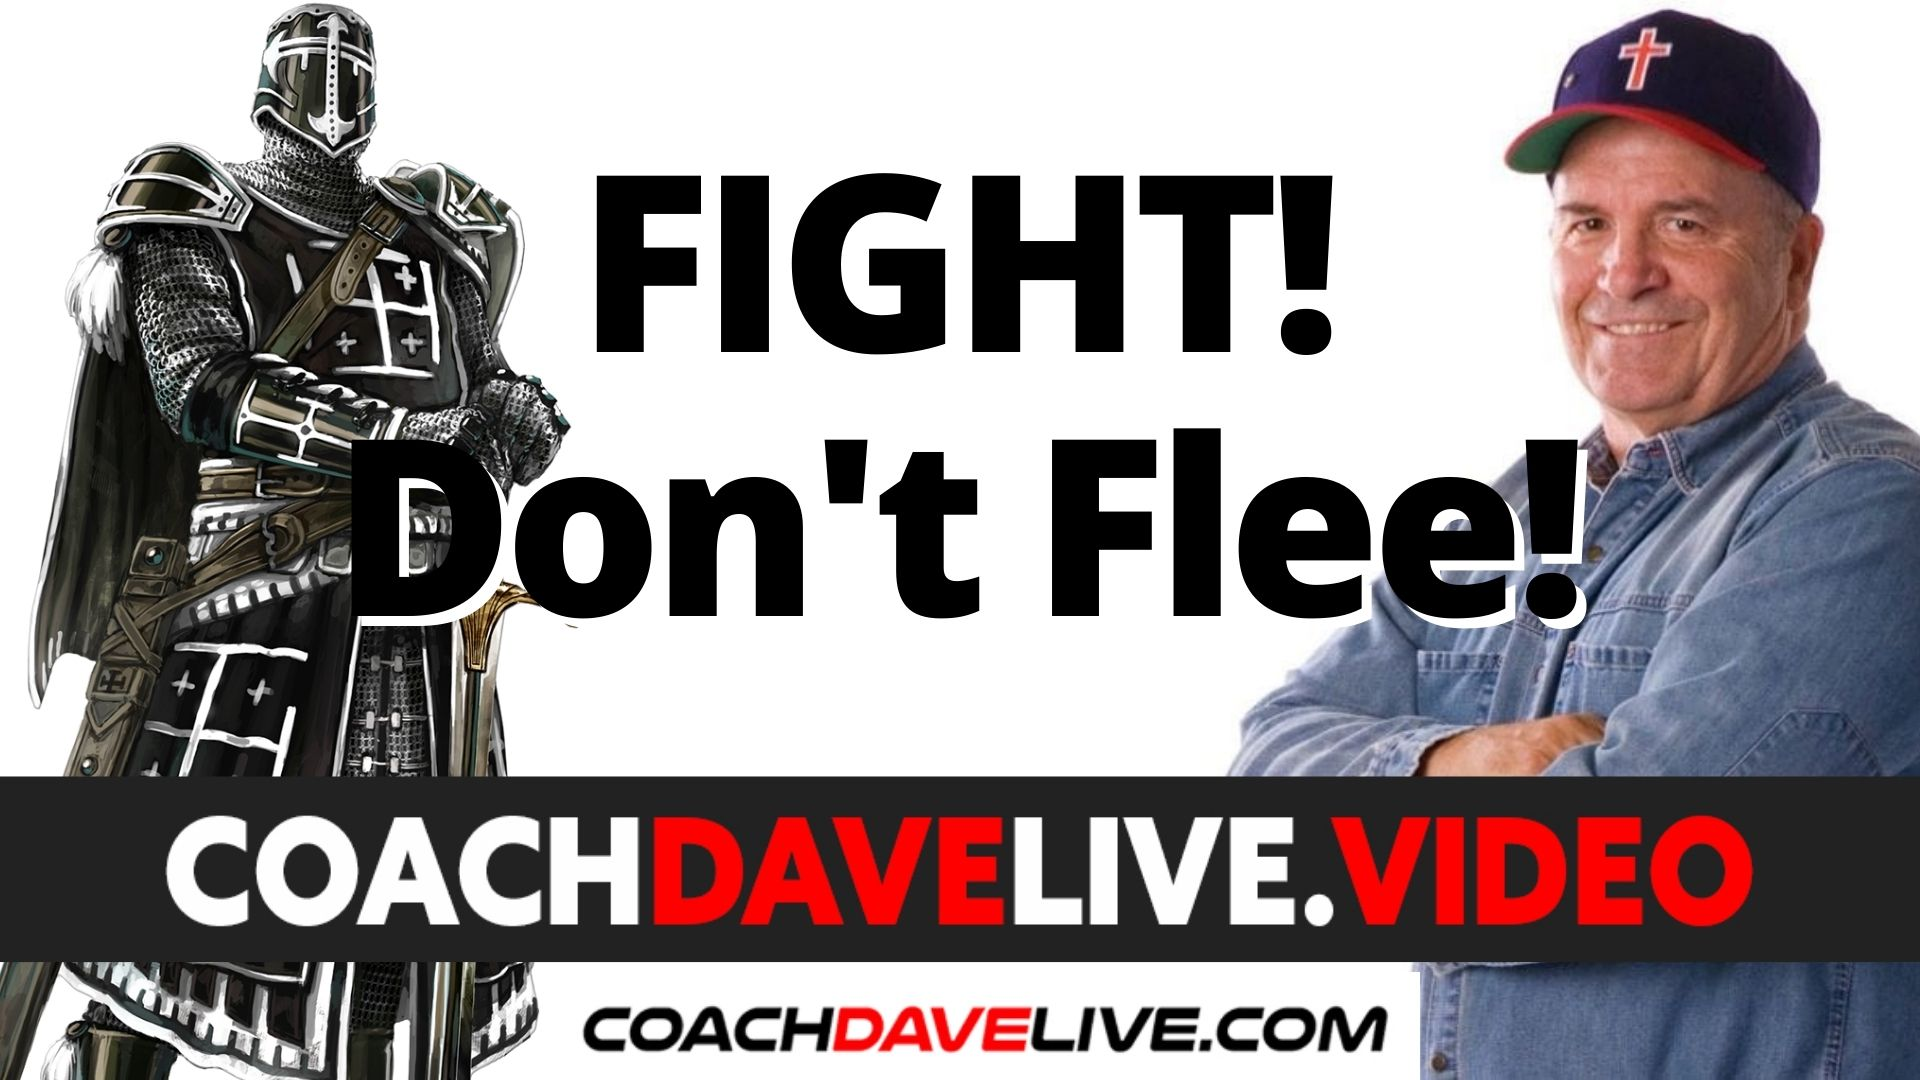 Coach Dave LIVE | 8-6-2021 | FIGHT, DON'T FLEE